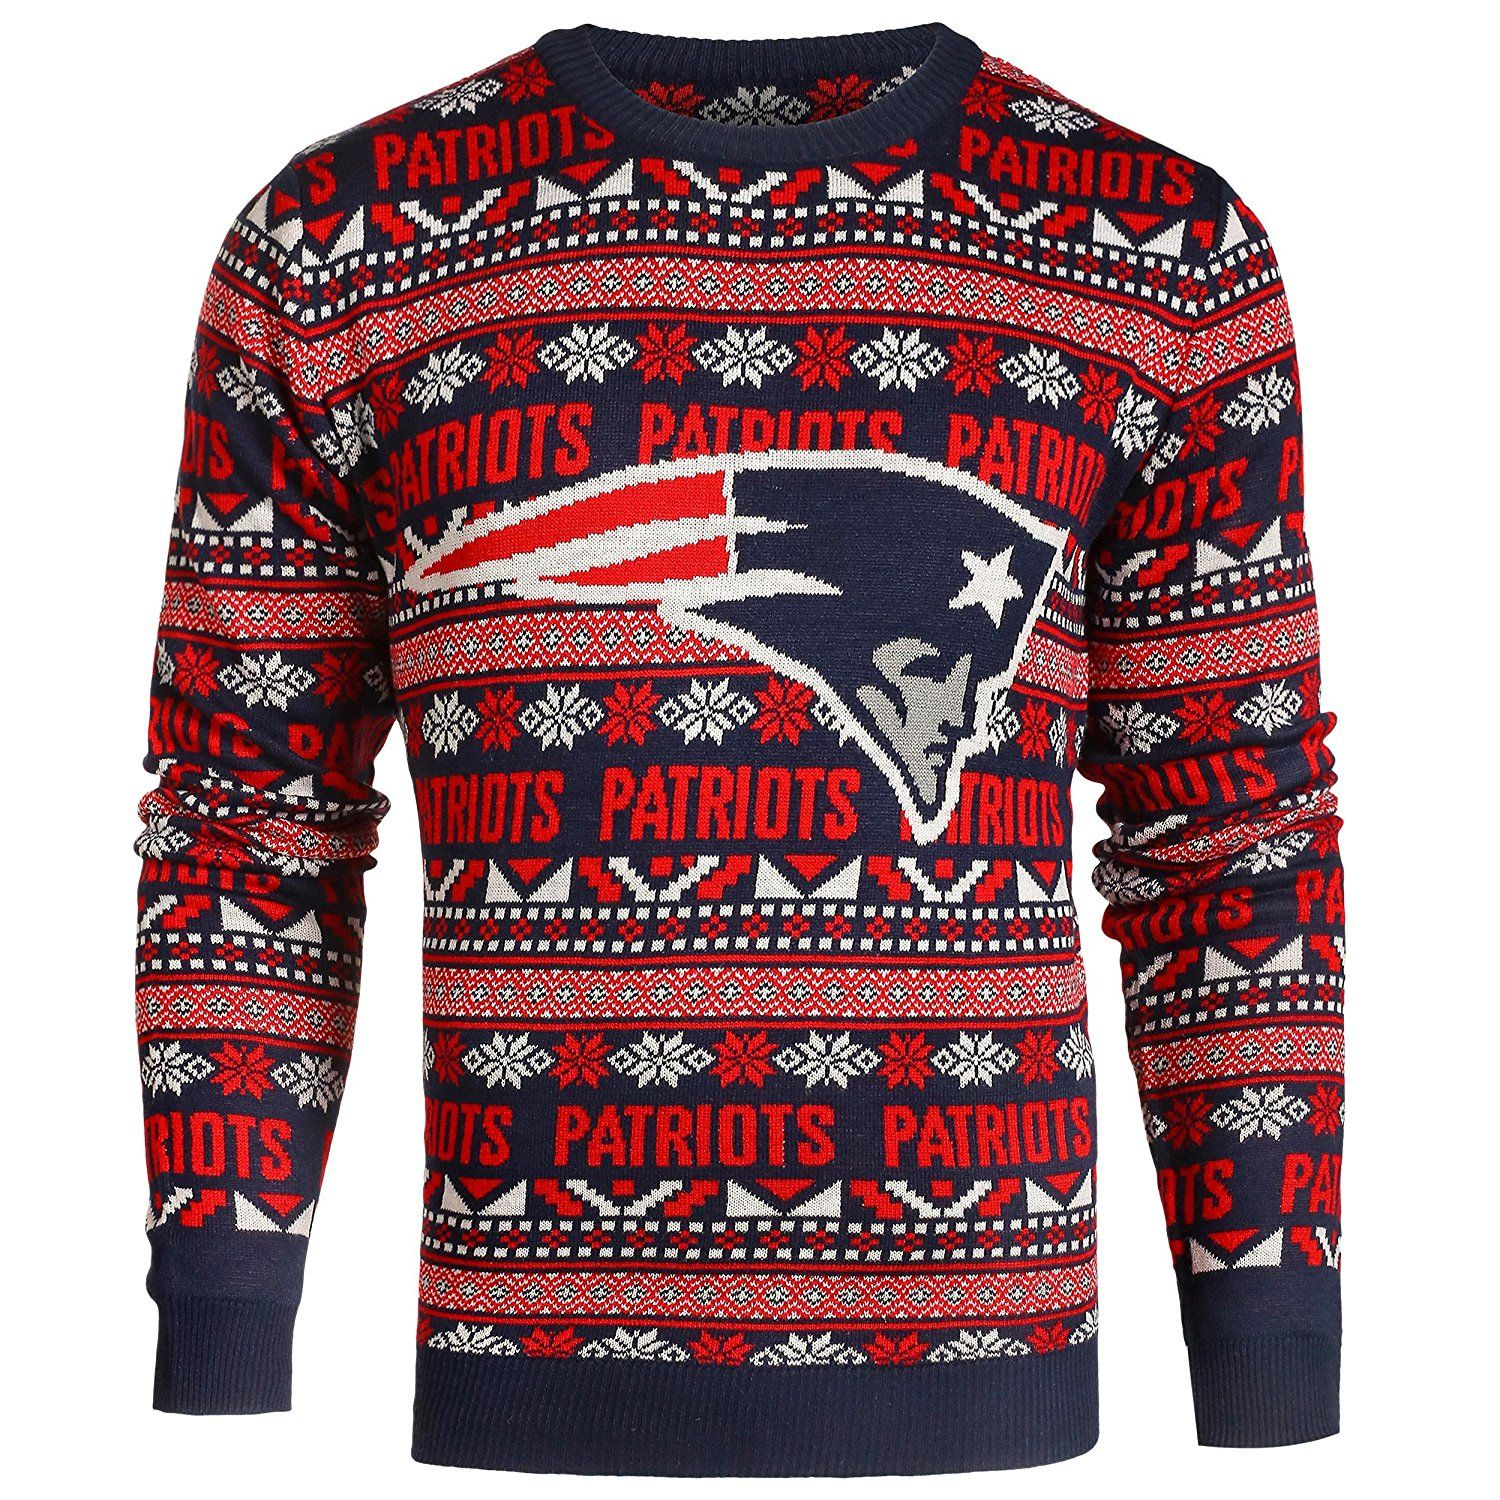 c1572ea1 NEW ENGLAND PATRIOTS 2016 UGLY SWEATER | OMG SHOES!!! in 2019 ...